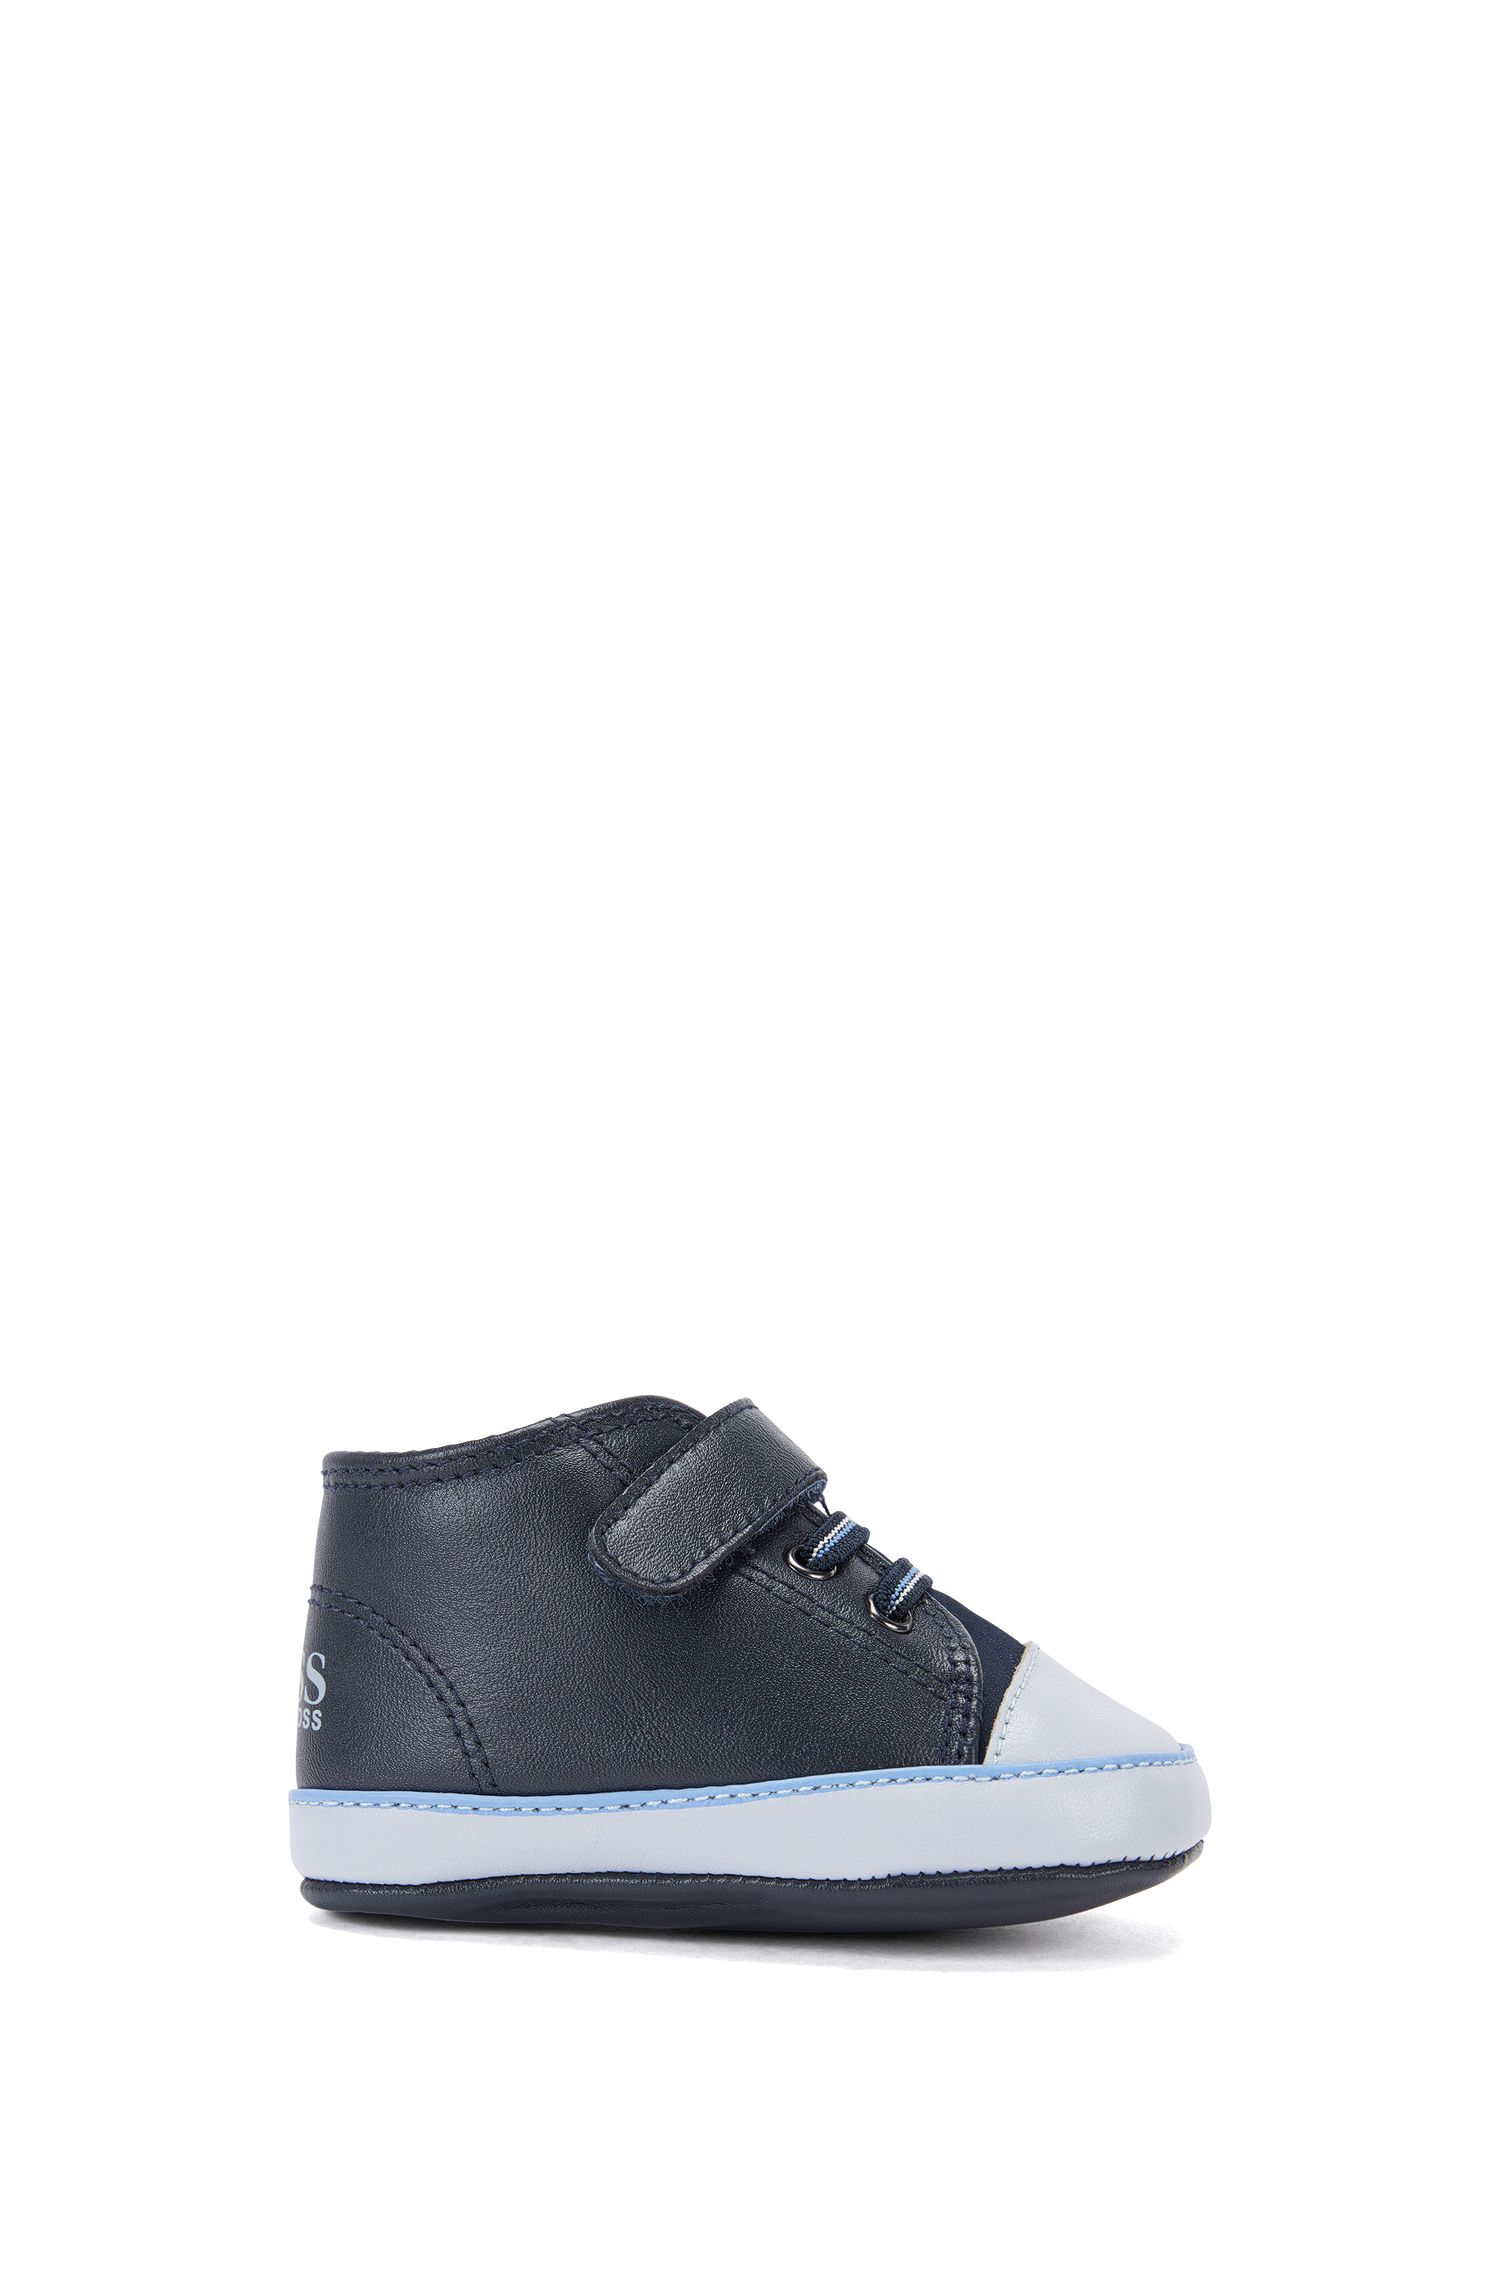 'J99047' | Newborn Leather Sneakers